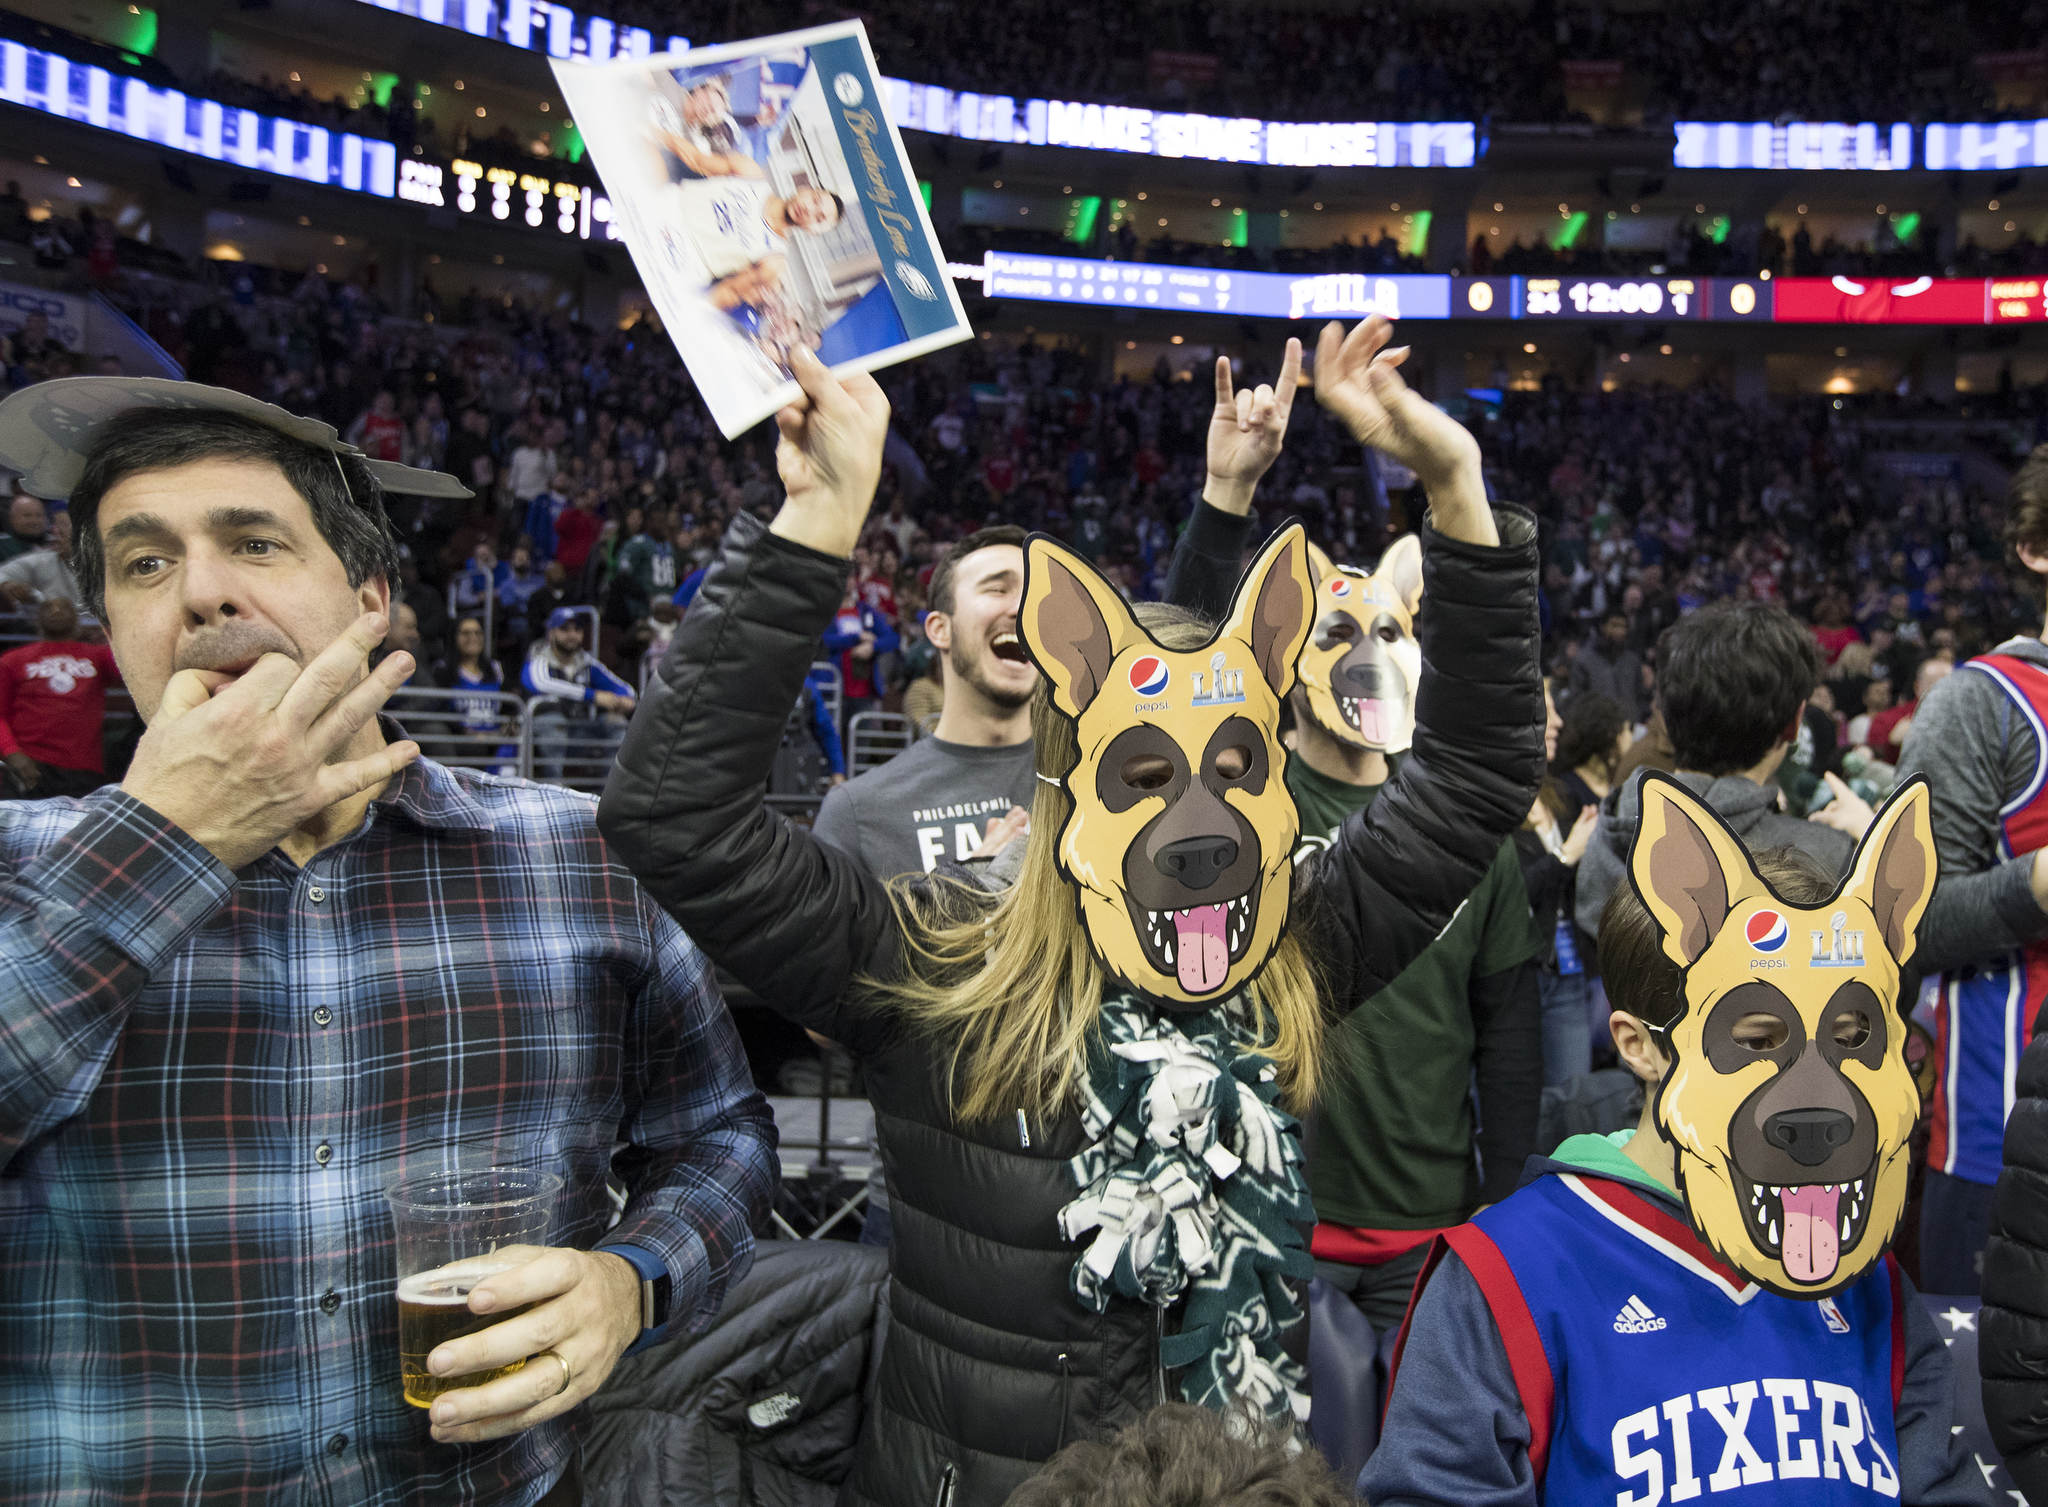 Sixers´ point guard Ben Simmons sports a dog mask in support of the Eagles. Simmons finished with 20 points, 6 rebounds, and 5 assists in the team´s win.